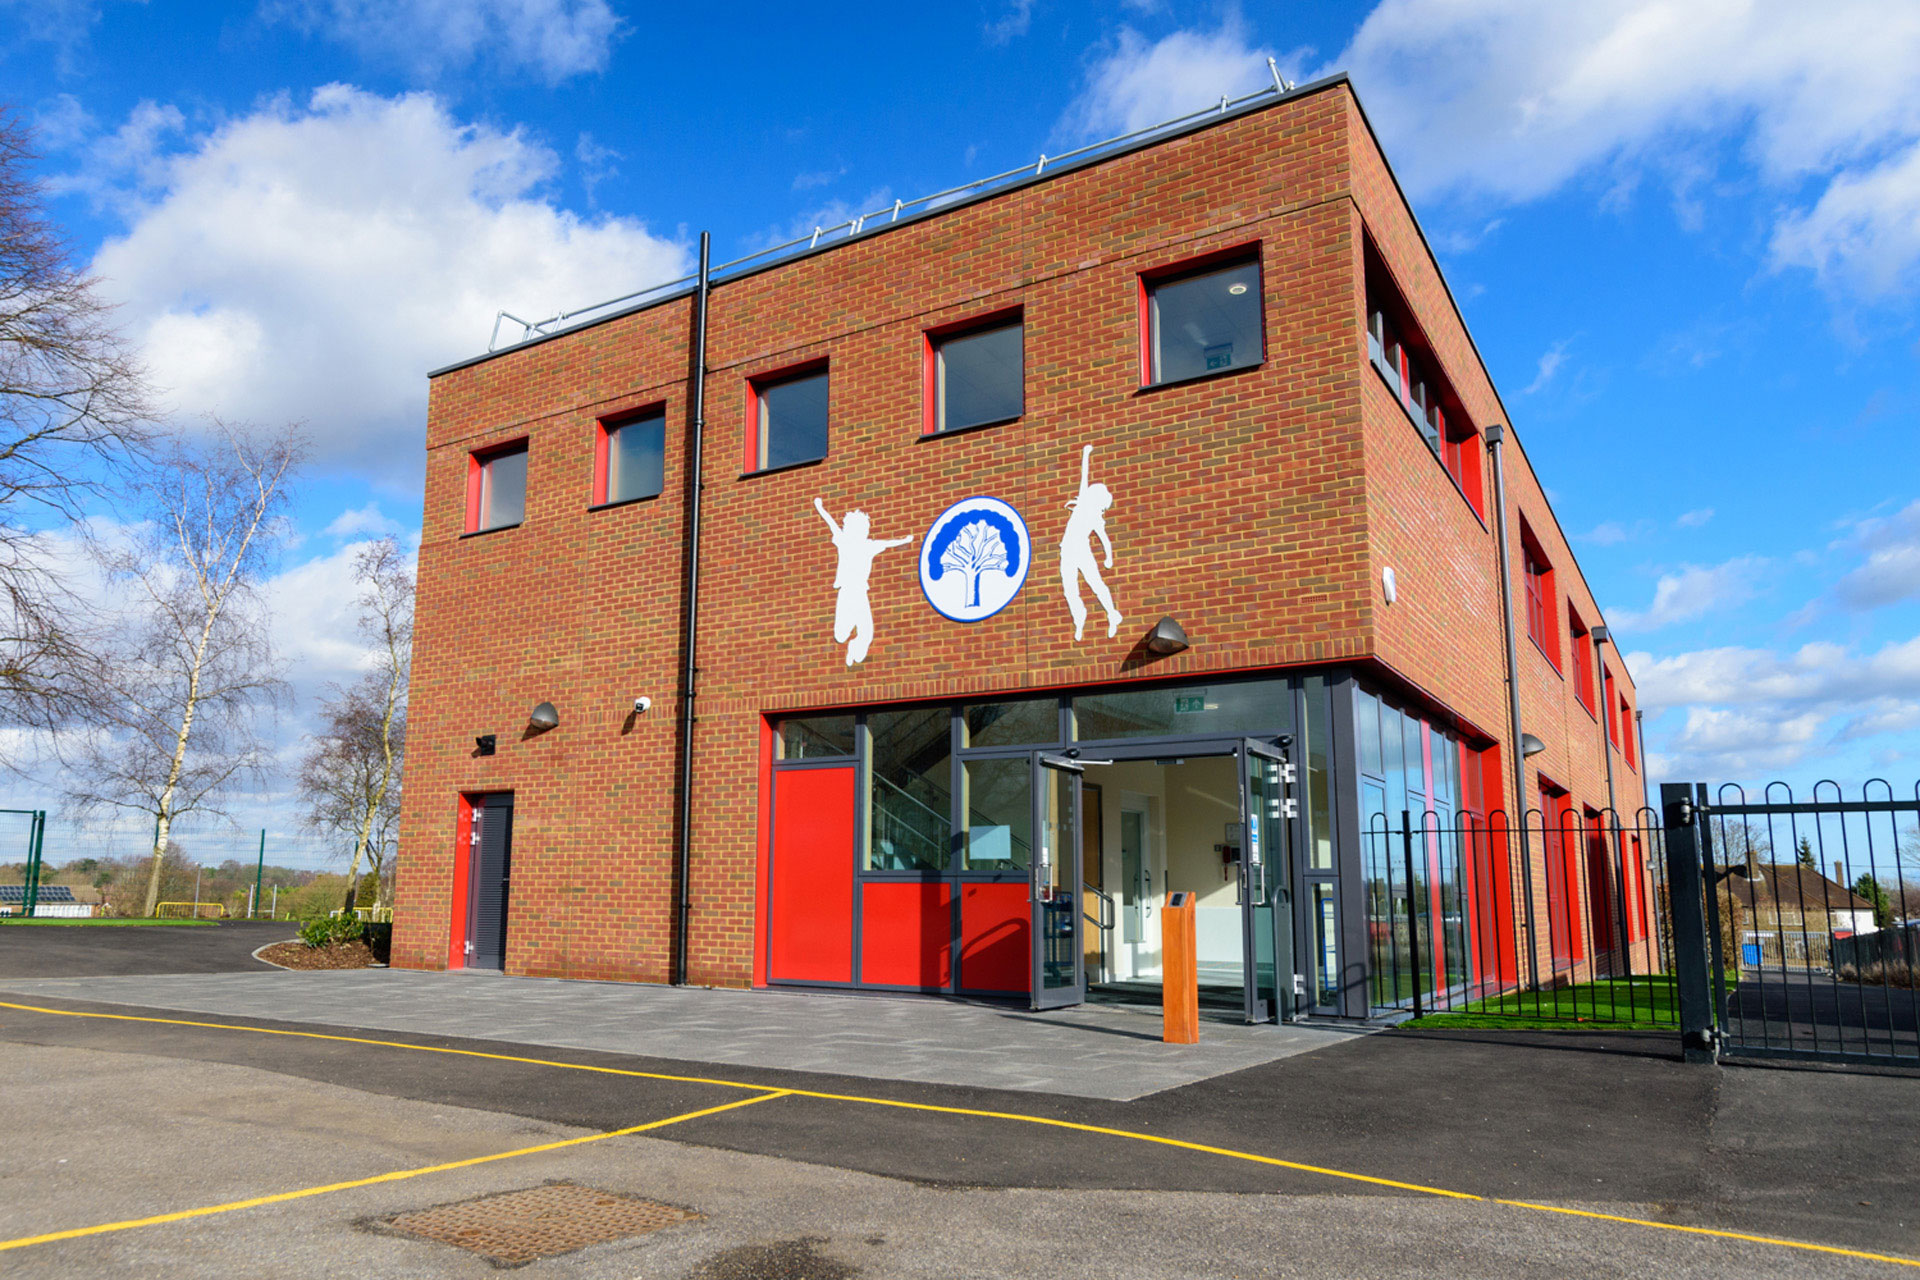 Woodcote Primary school - Modular School expansion - external view - entrance